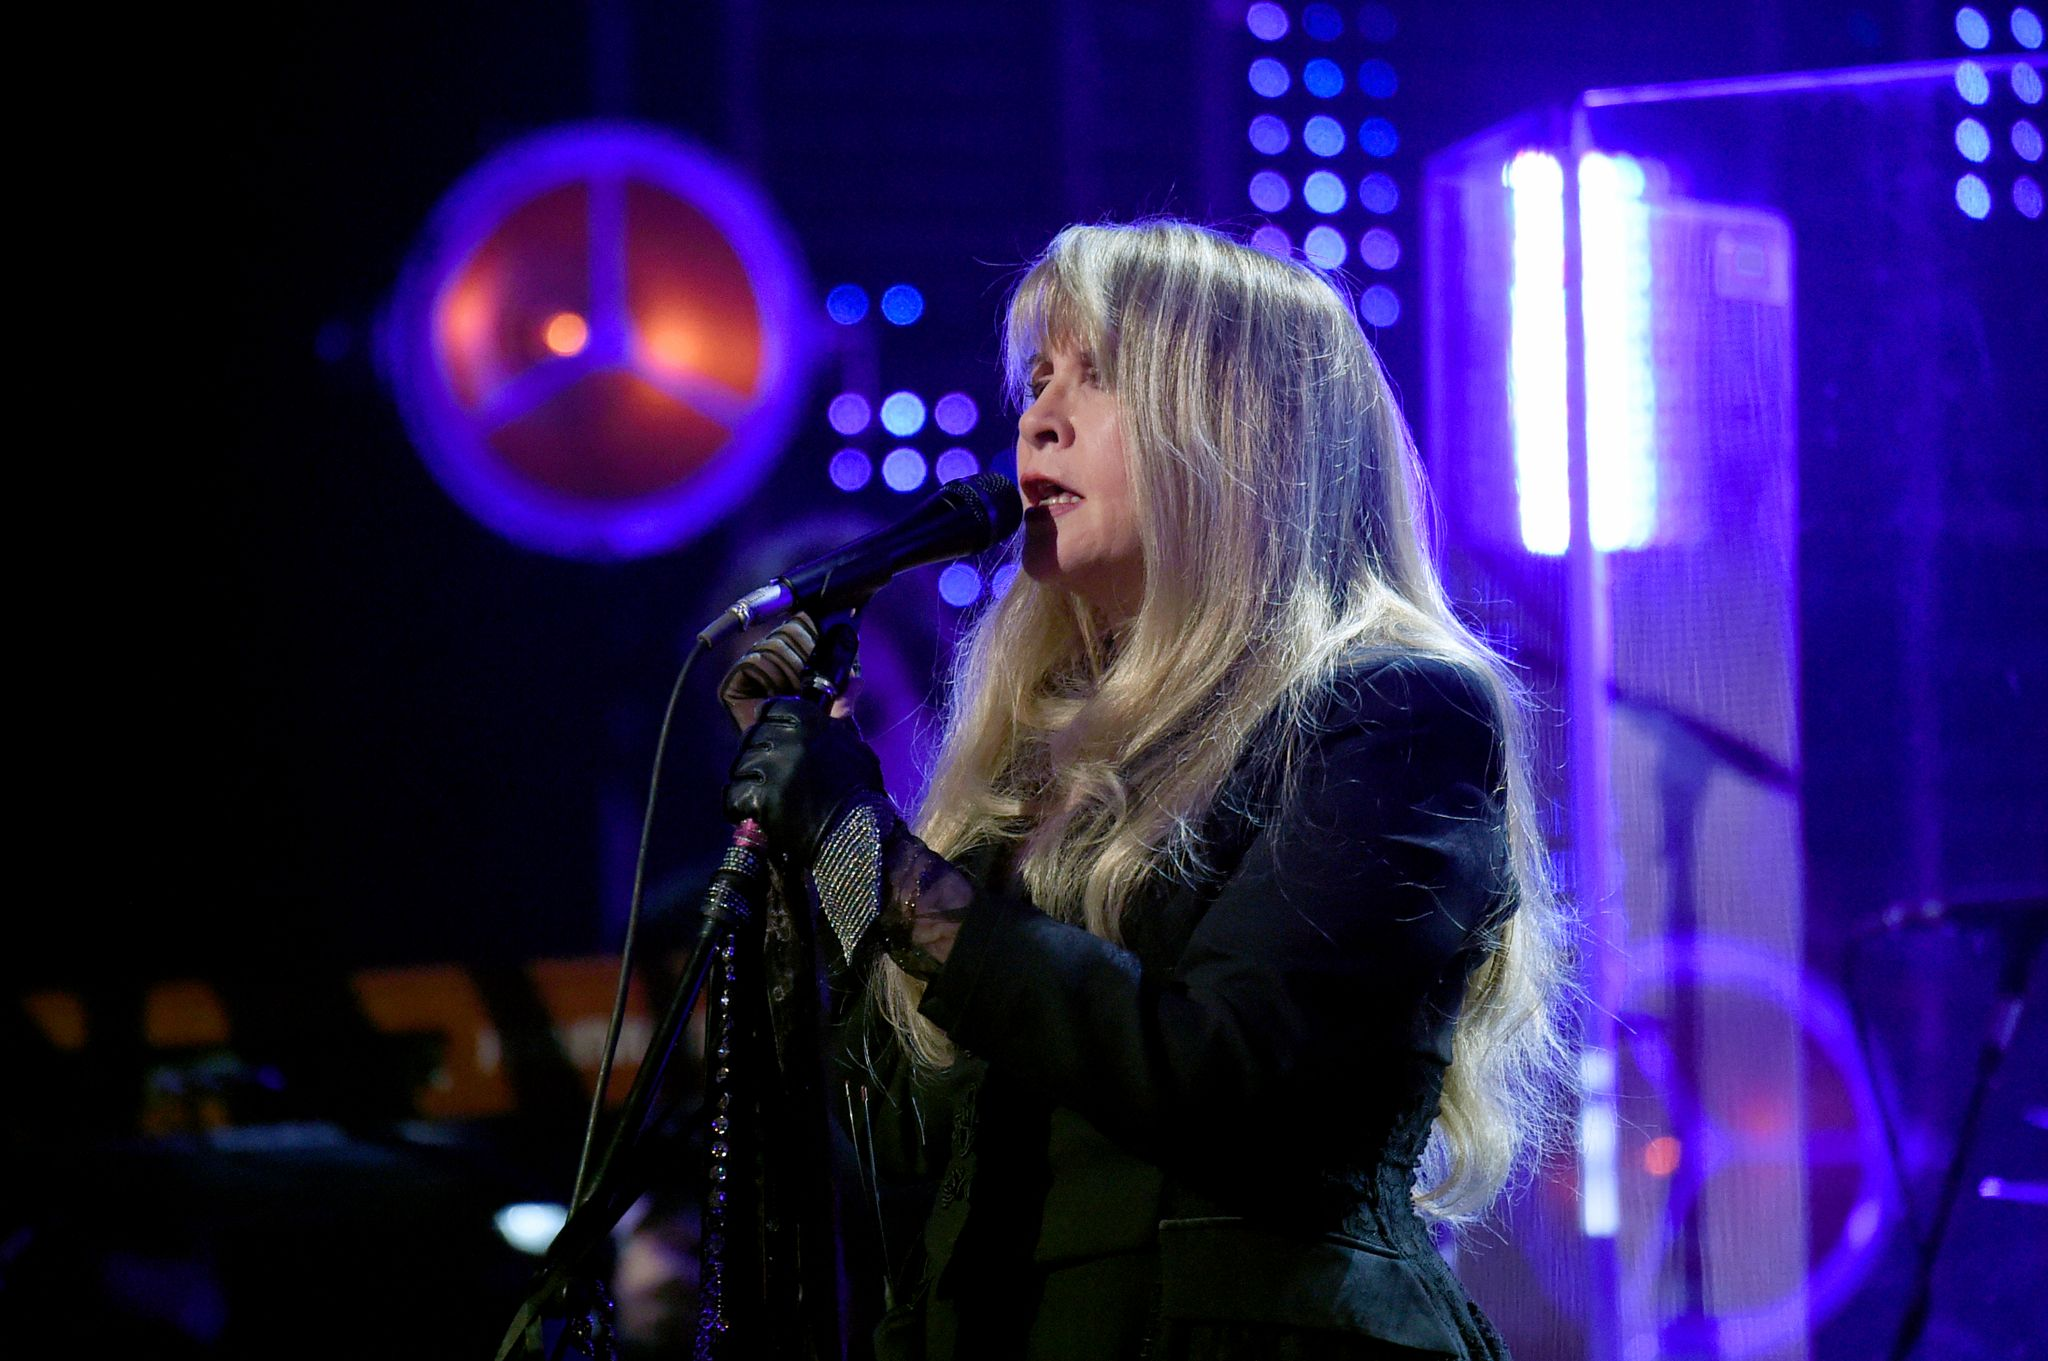 Stevie Nicks drops out of BottleRock, citing COVID concerns